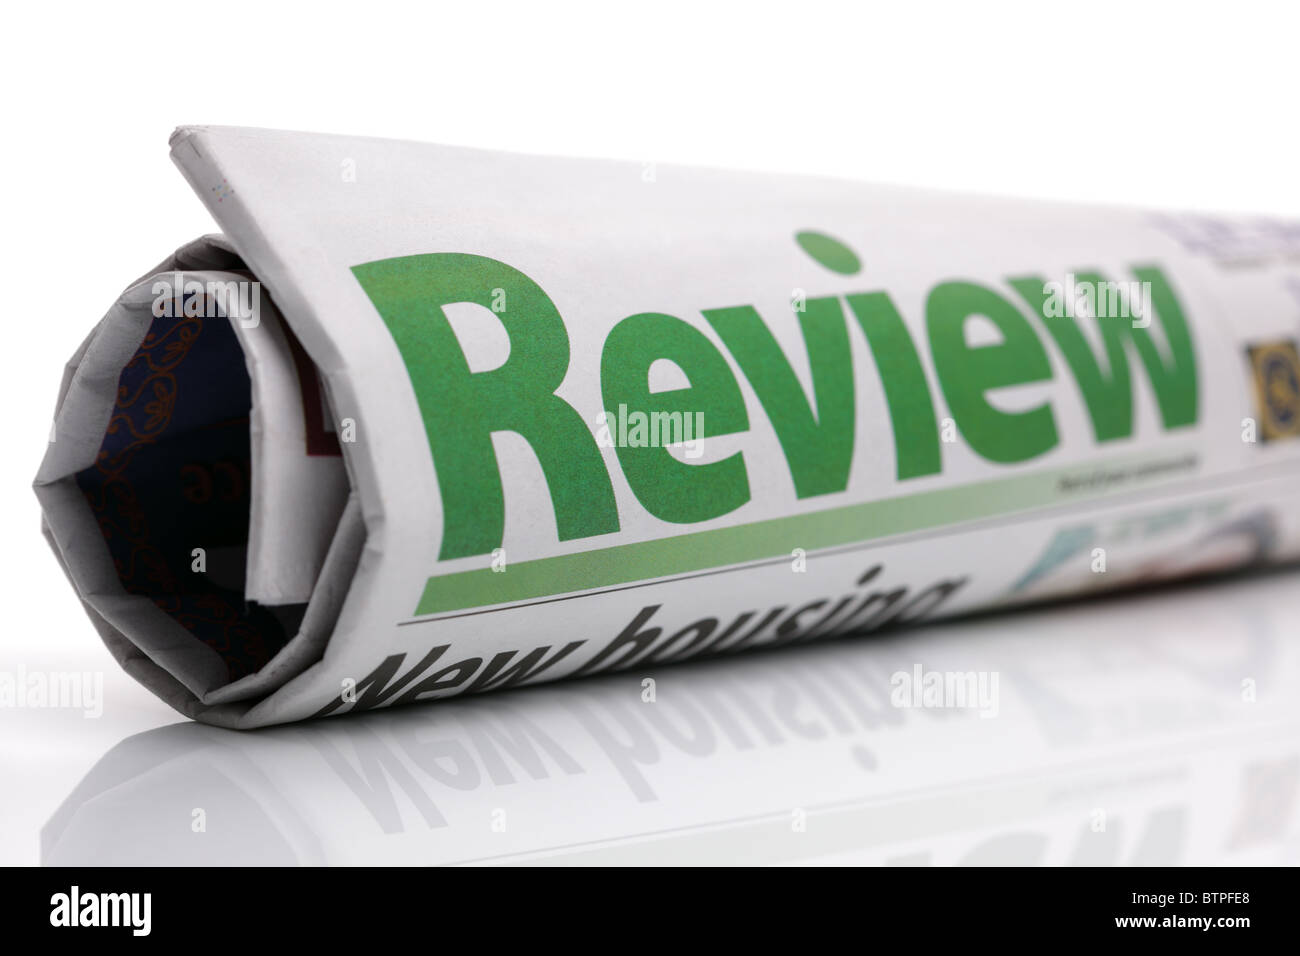 Review newspaper headline - Stock Image